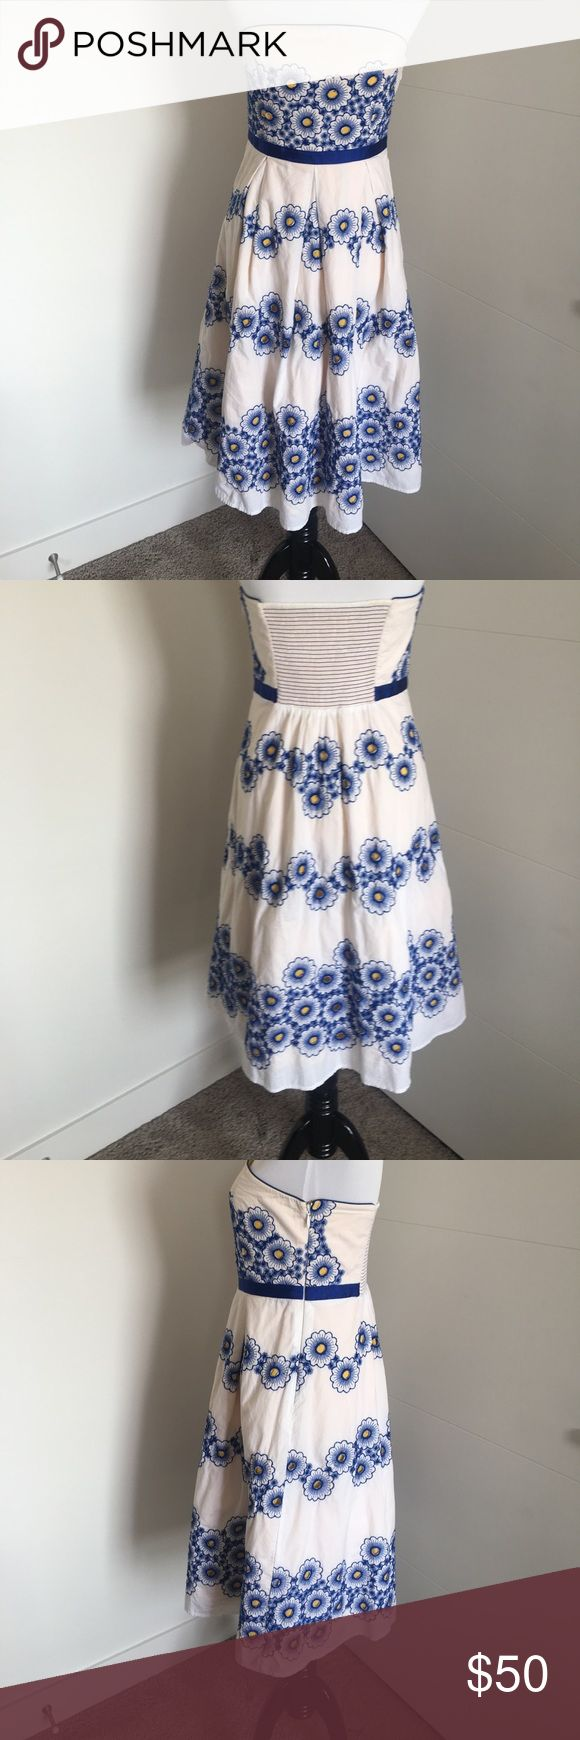 FLASH SALE!! White Anthropologie dress sz 6 Strapless white dress with blue embroidered flowers and yellows underlay. Has blue ribbon at waist. Hidden zipper on side. Has elastic panel in back for perfect fit. Hits at calf. Tulle at bottom makes a subtle, full skirt. Amazing dress for nights out or for more formal gatherings. Would look fantastic over a crisp white button down for colder weather. Anthropologie Dresses Strapless